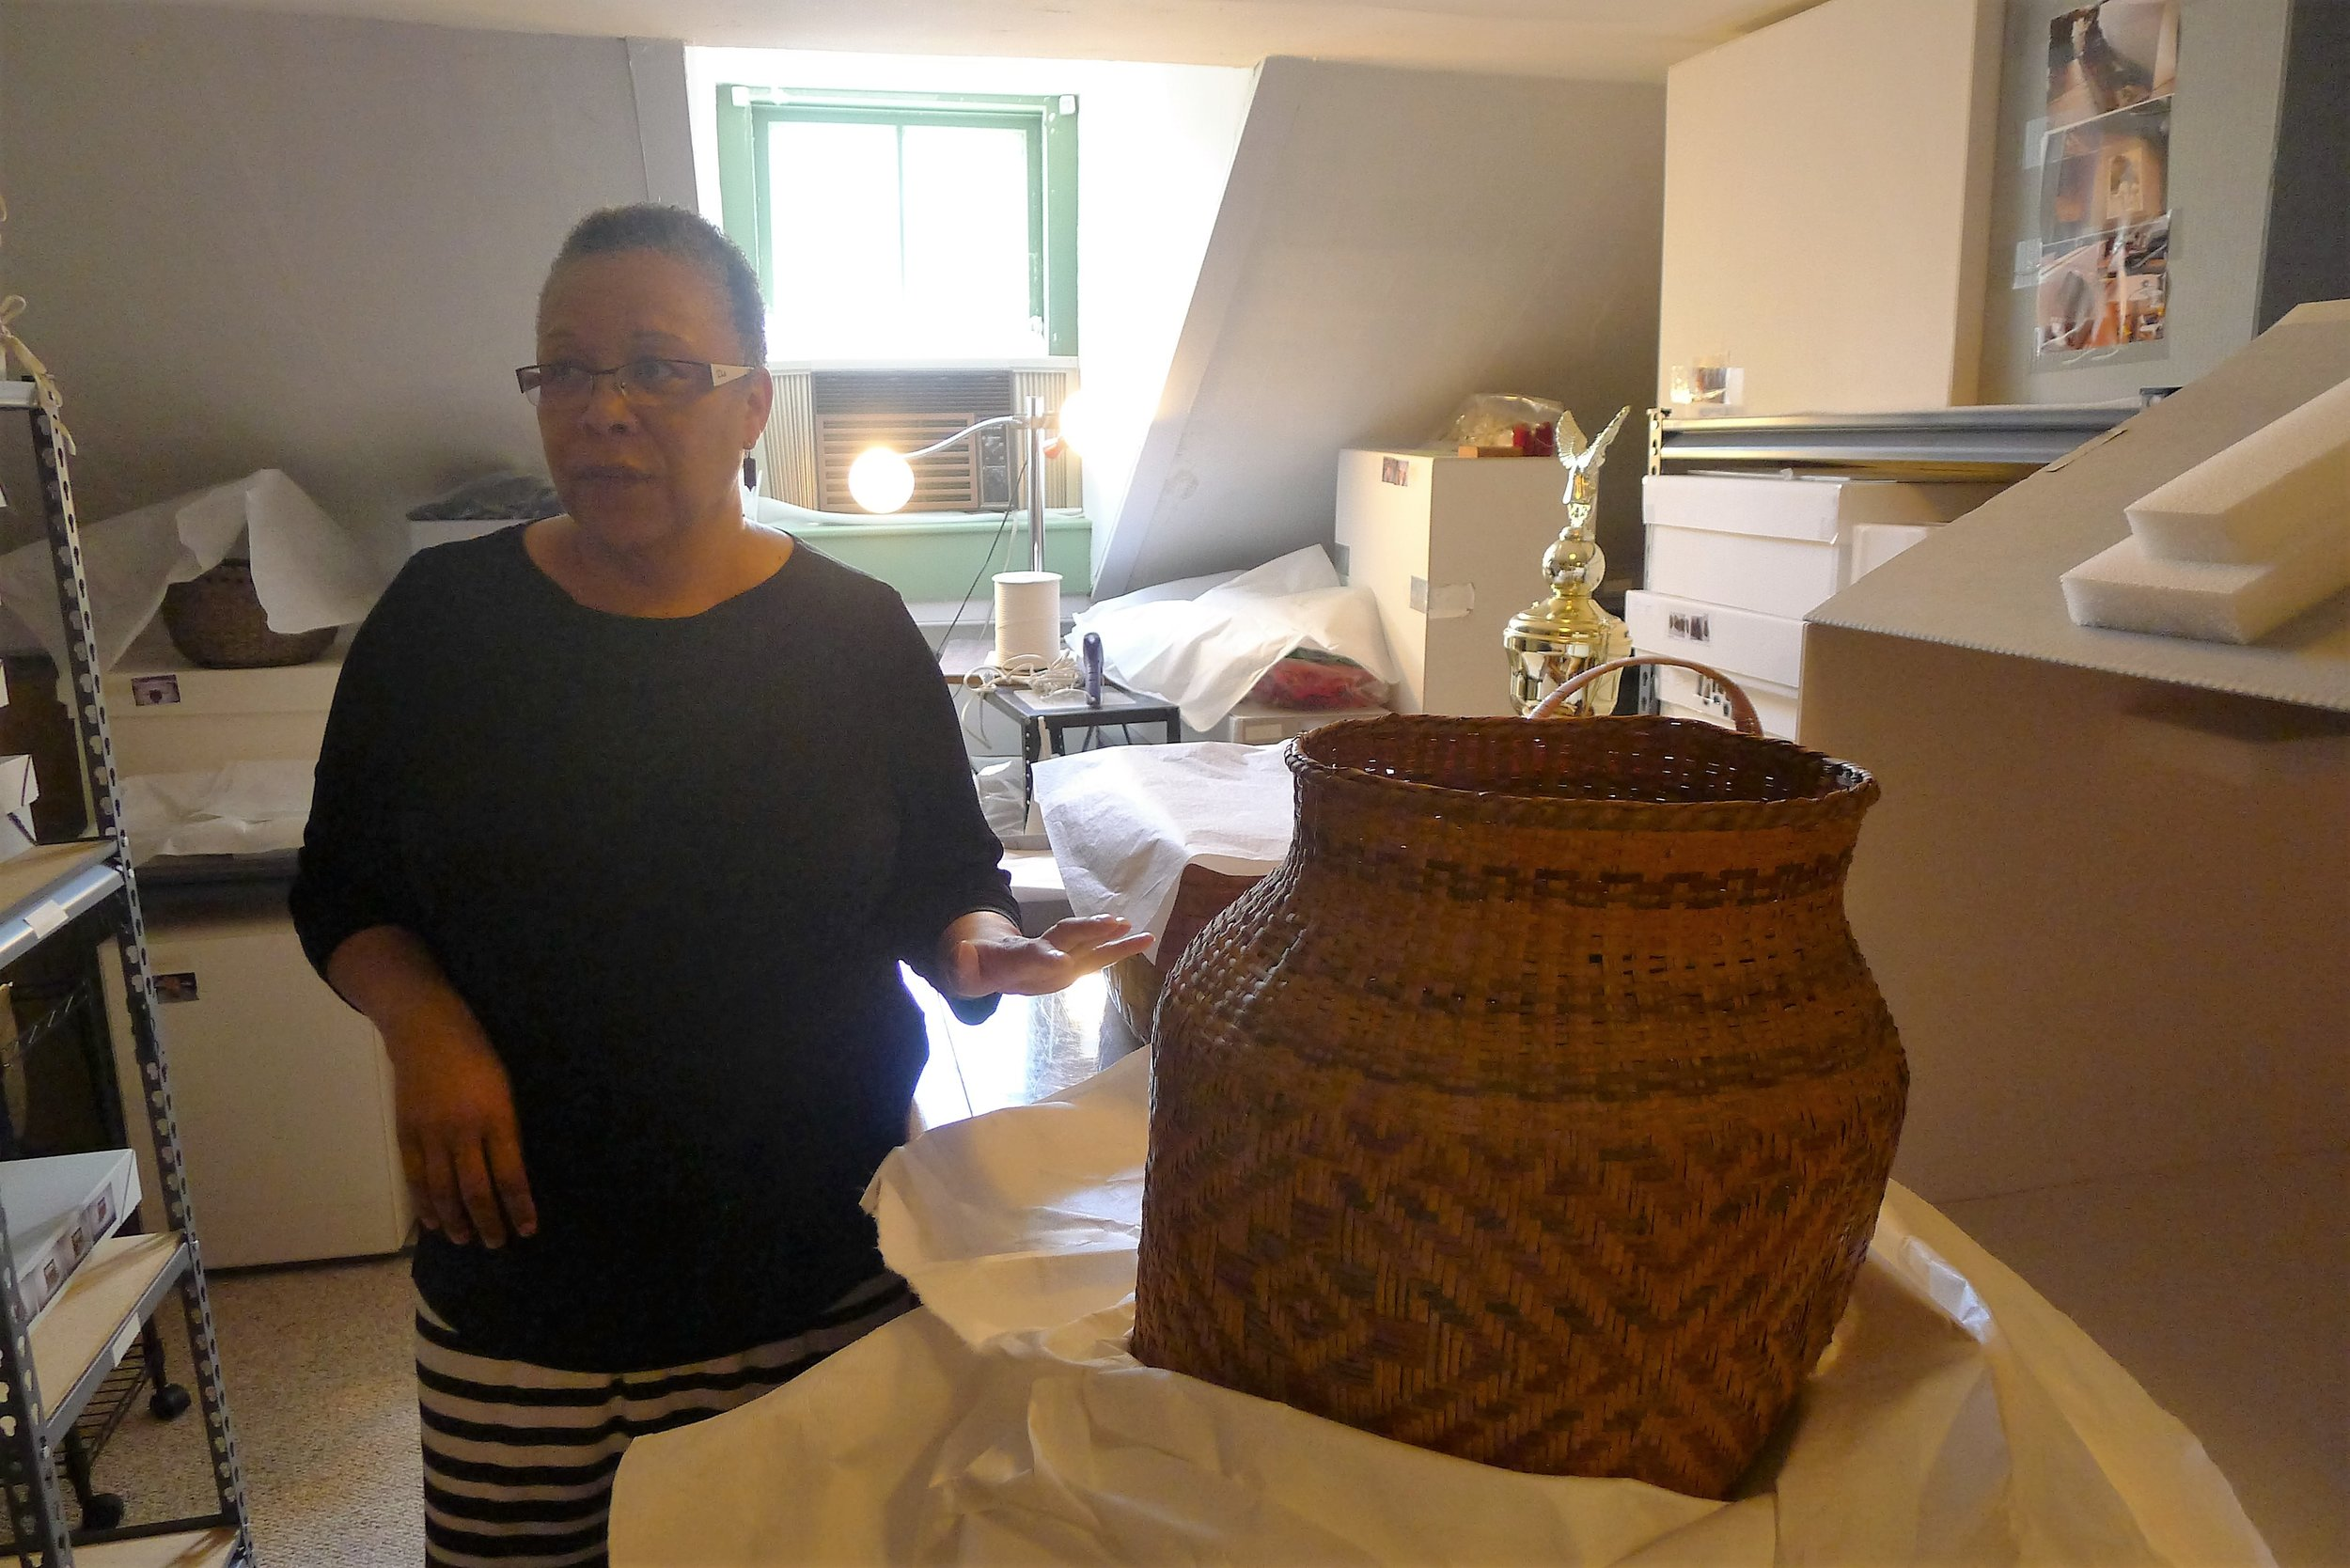 [caption] Kimberly Peters shares community connections of a cane basket given to Eva Lutz Butler by Dr. Frank Speck in 1945. The basket was given to Princess Redwing (Narragansett) by Mrs. Butler for the museum. Both were students of Frank Speck. Photo by Margaret Bruchac.